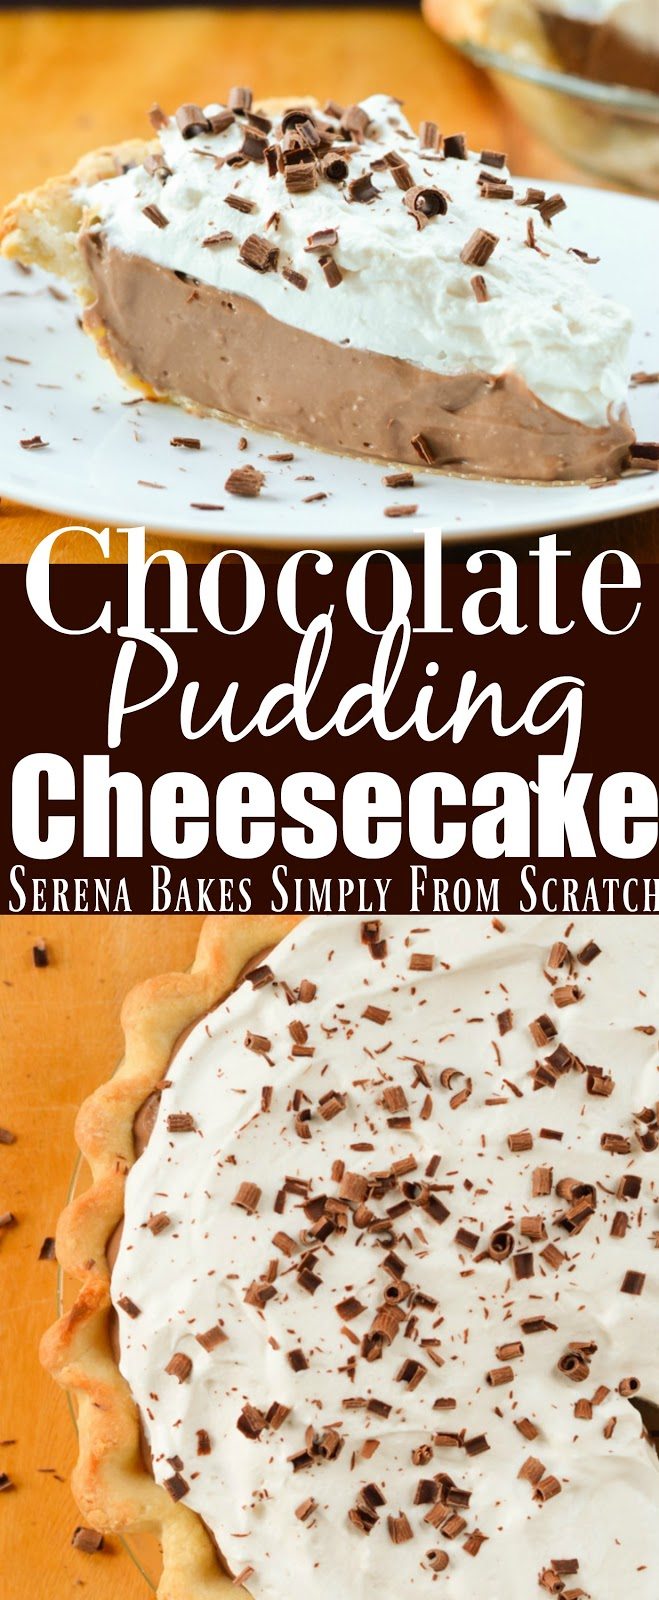 Chocolate Pudding Cheesecake recipe is the ultimate chocolate lovers dessert.